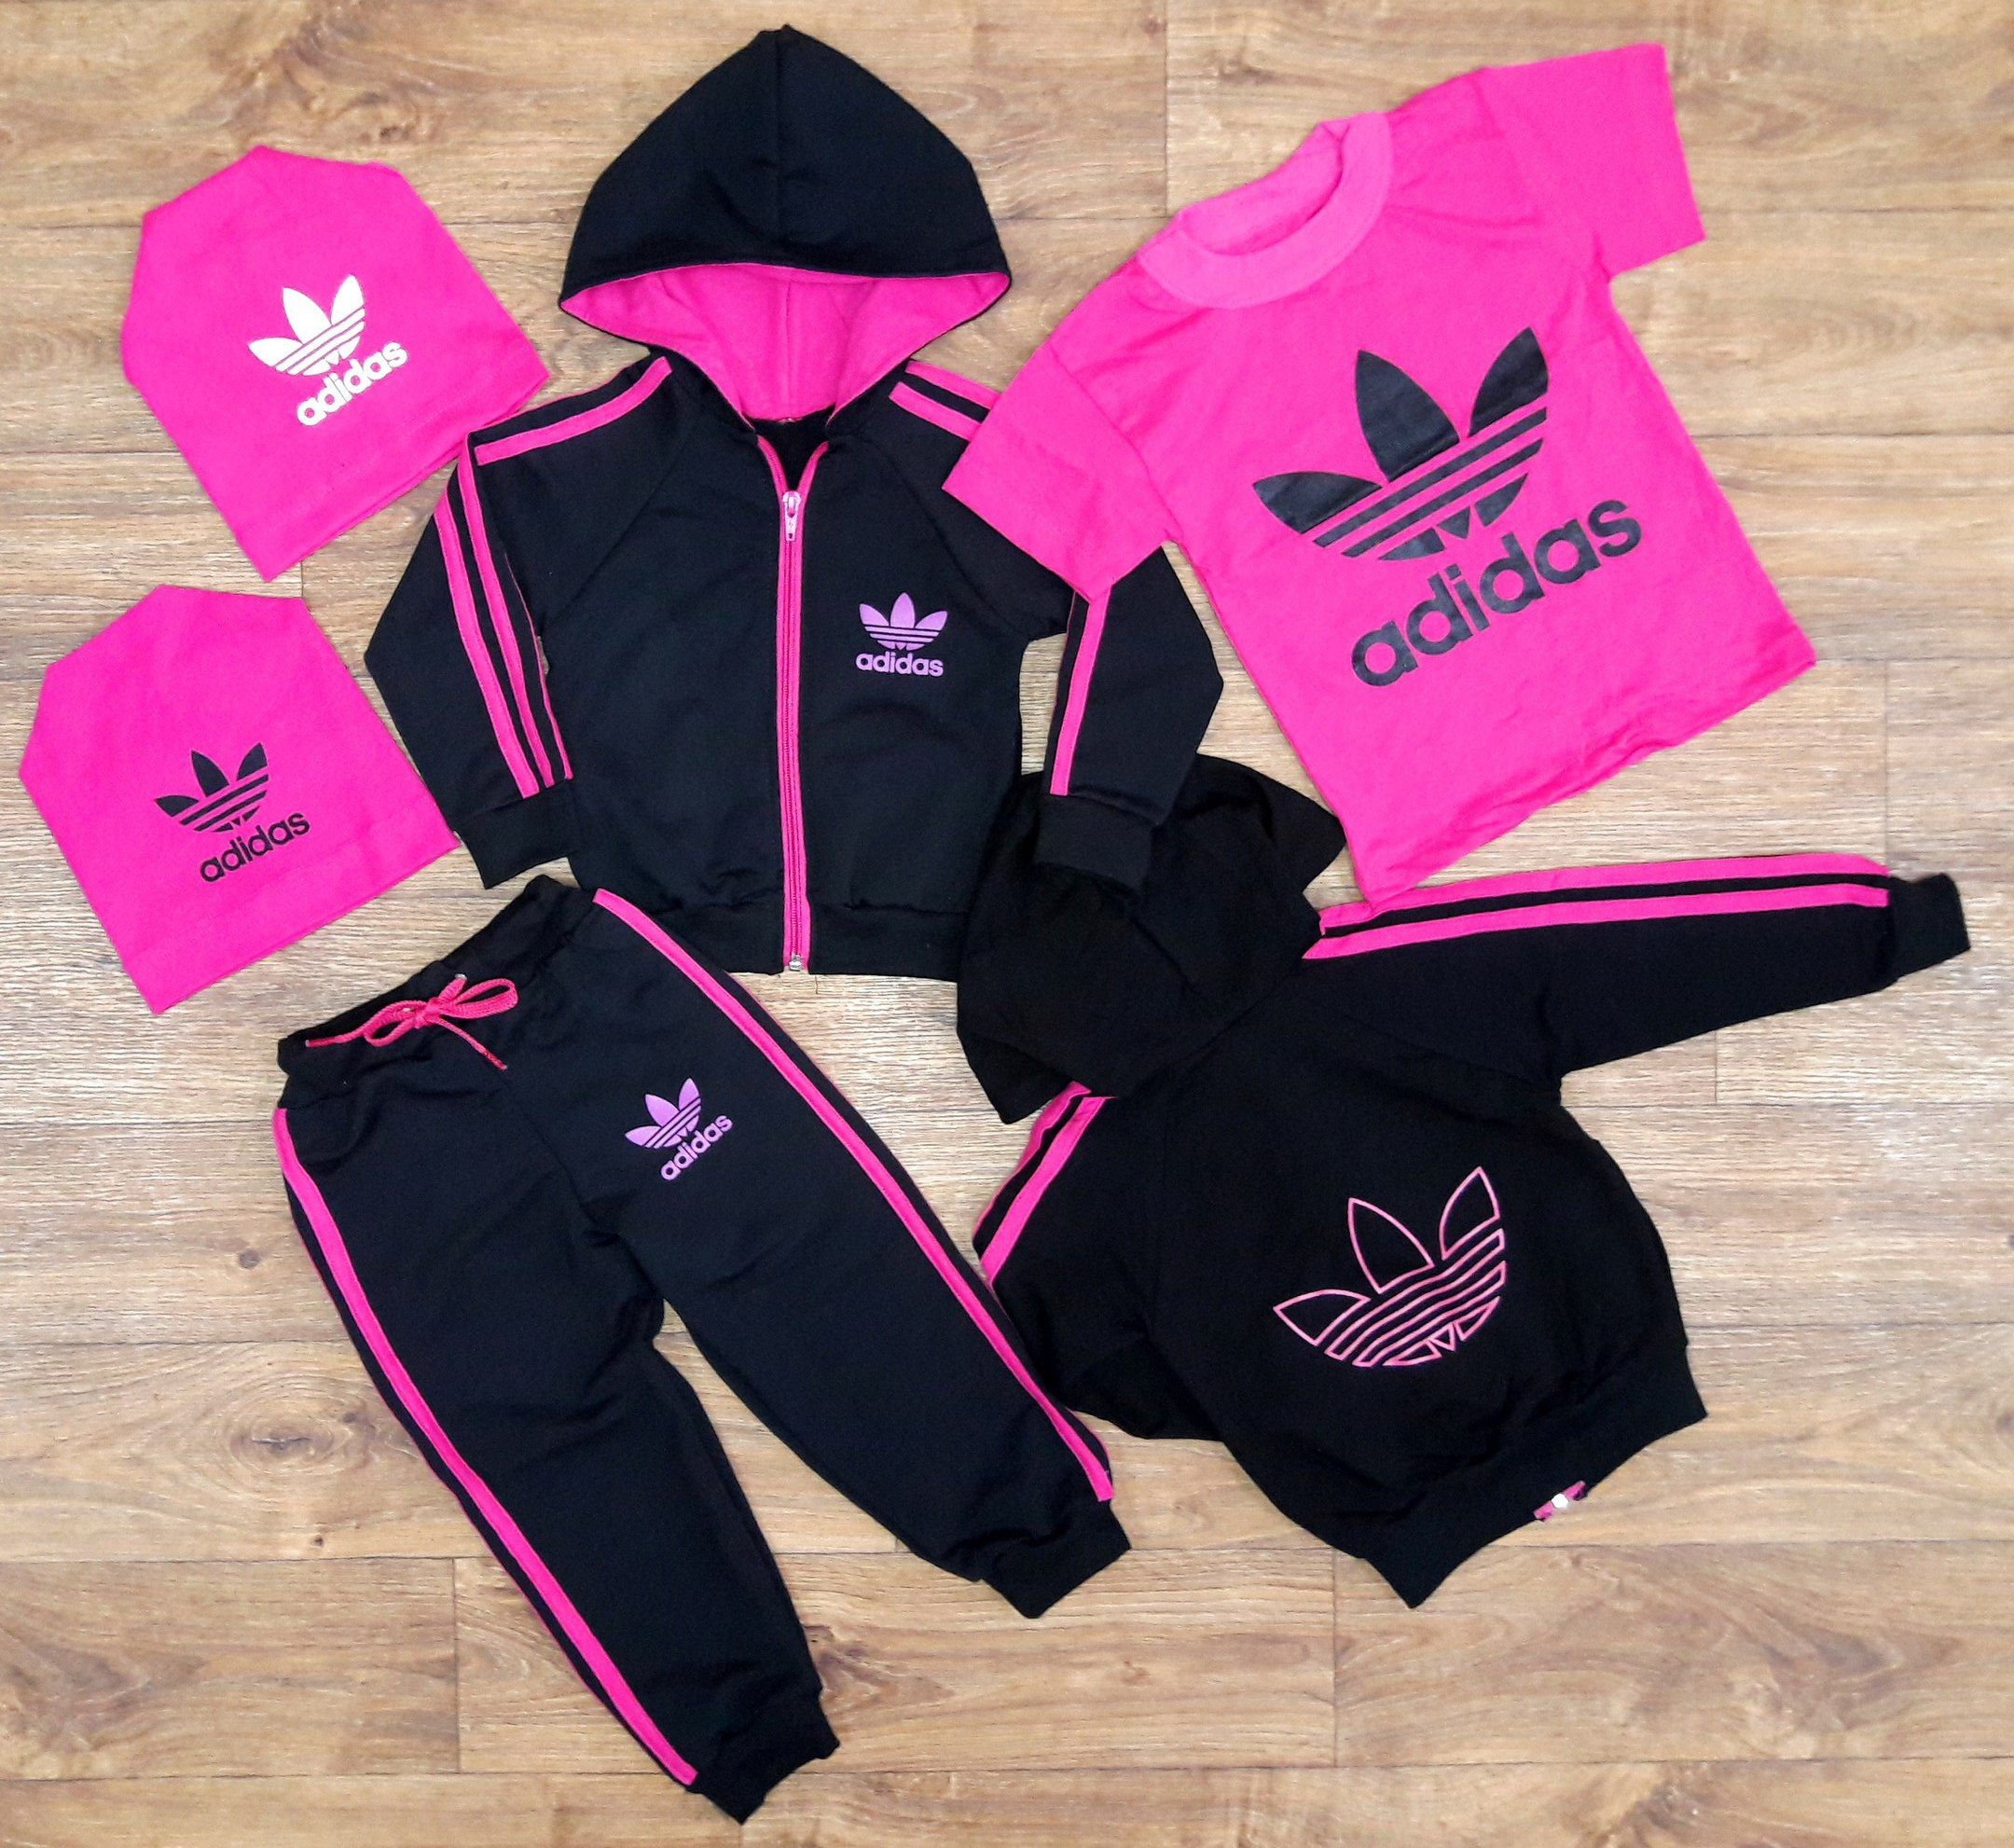 Adidas Originals Infant Baby Girls Tracksuit Outfit Set | eBay